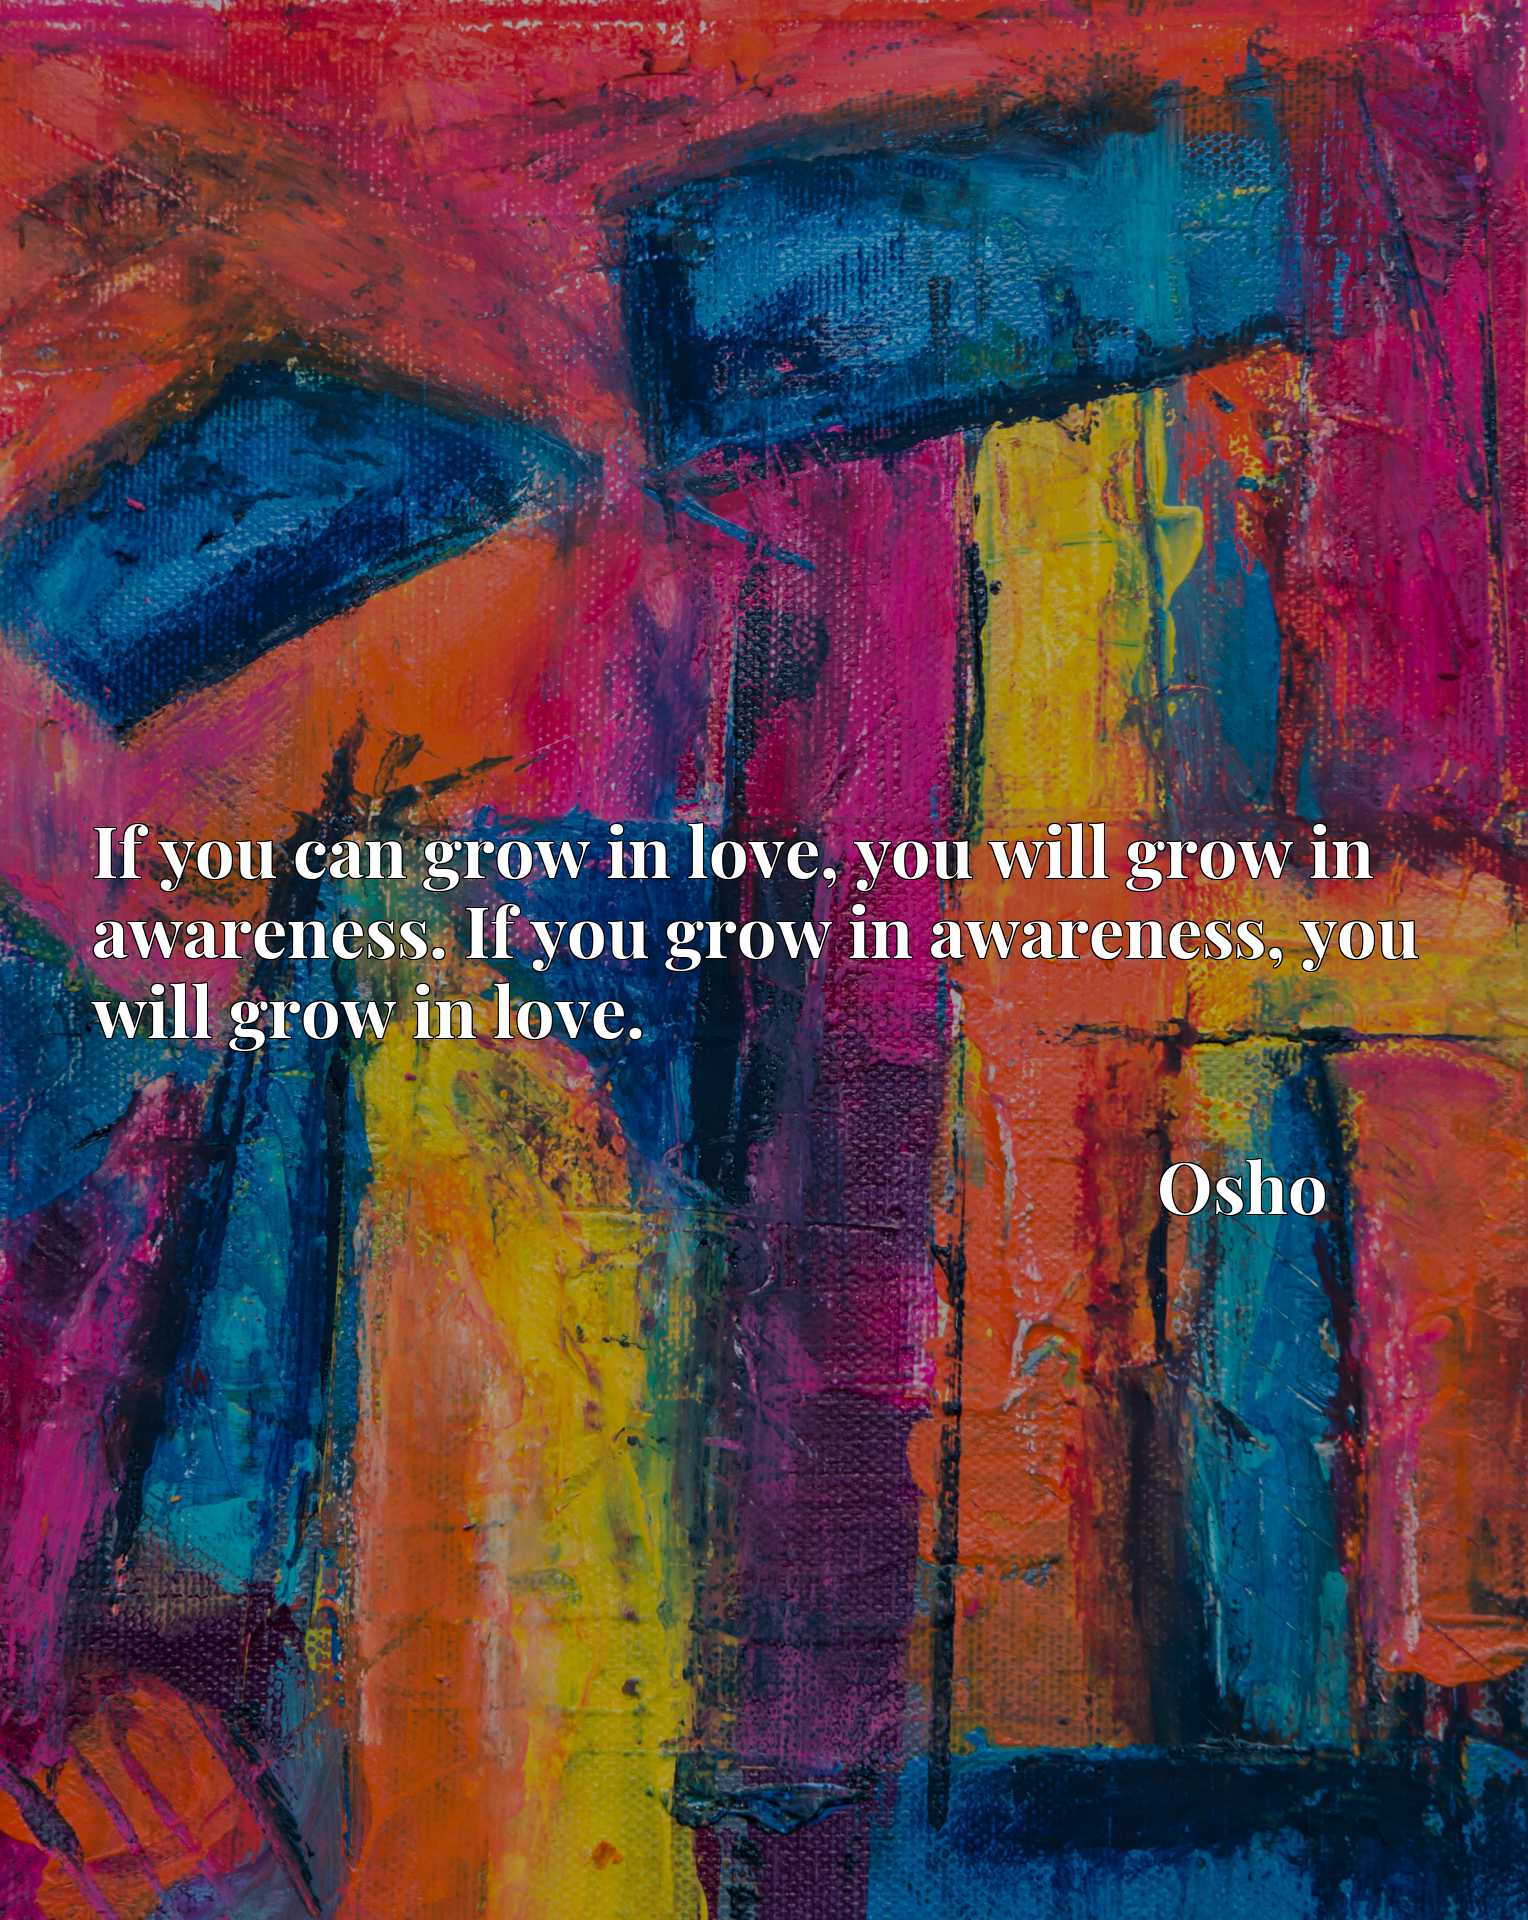 If you can grow in love, you will grow in awareness. If you grow in awareness, you will grow in love.